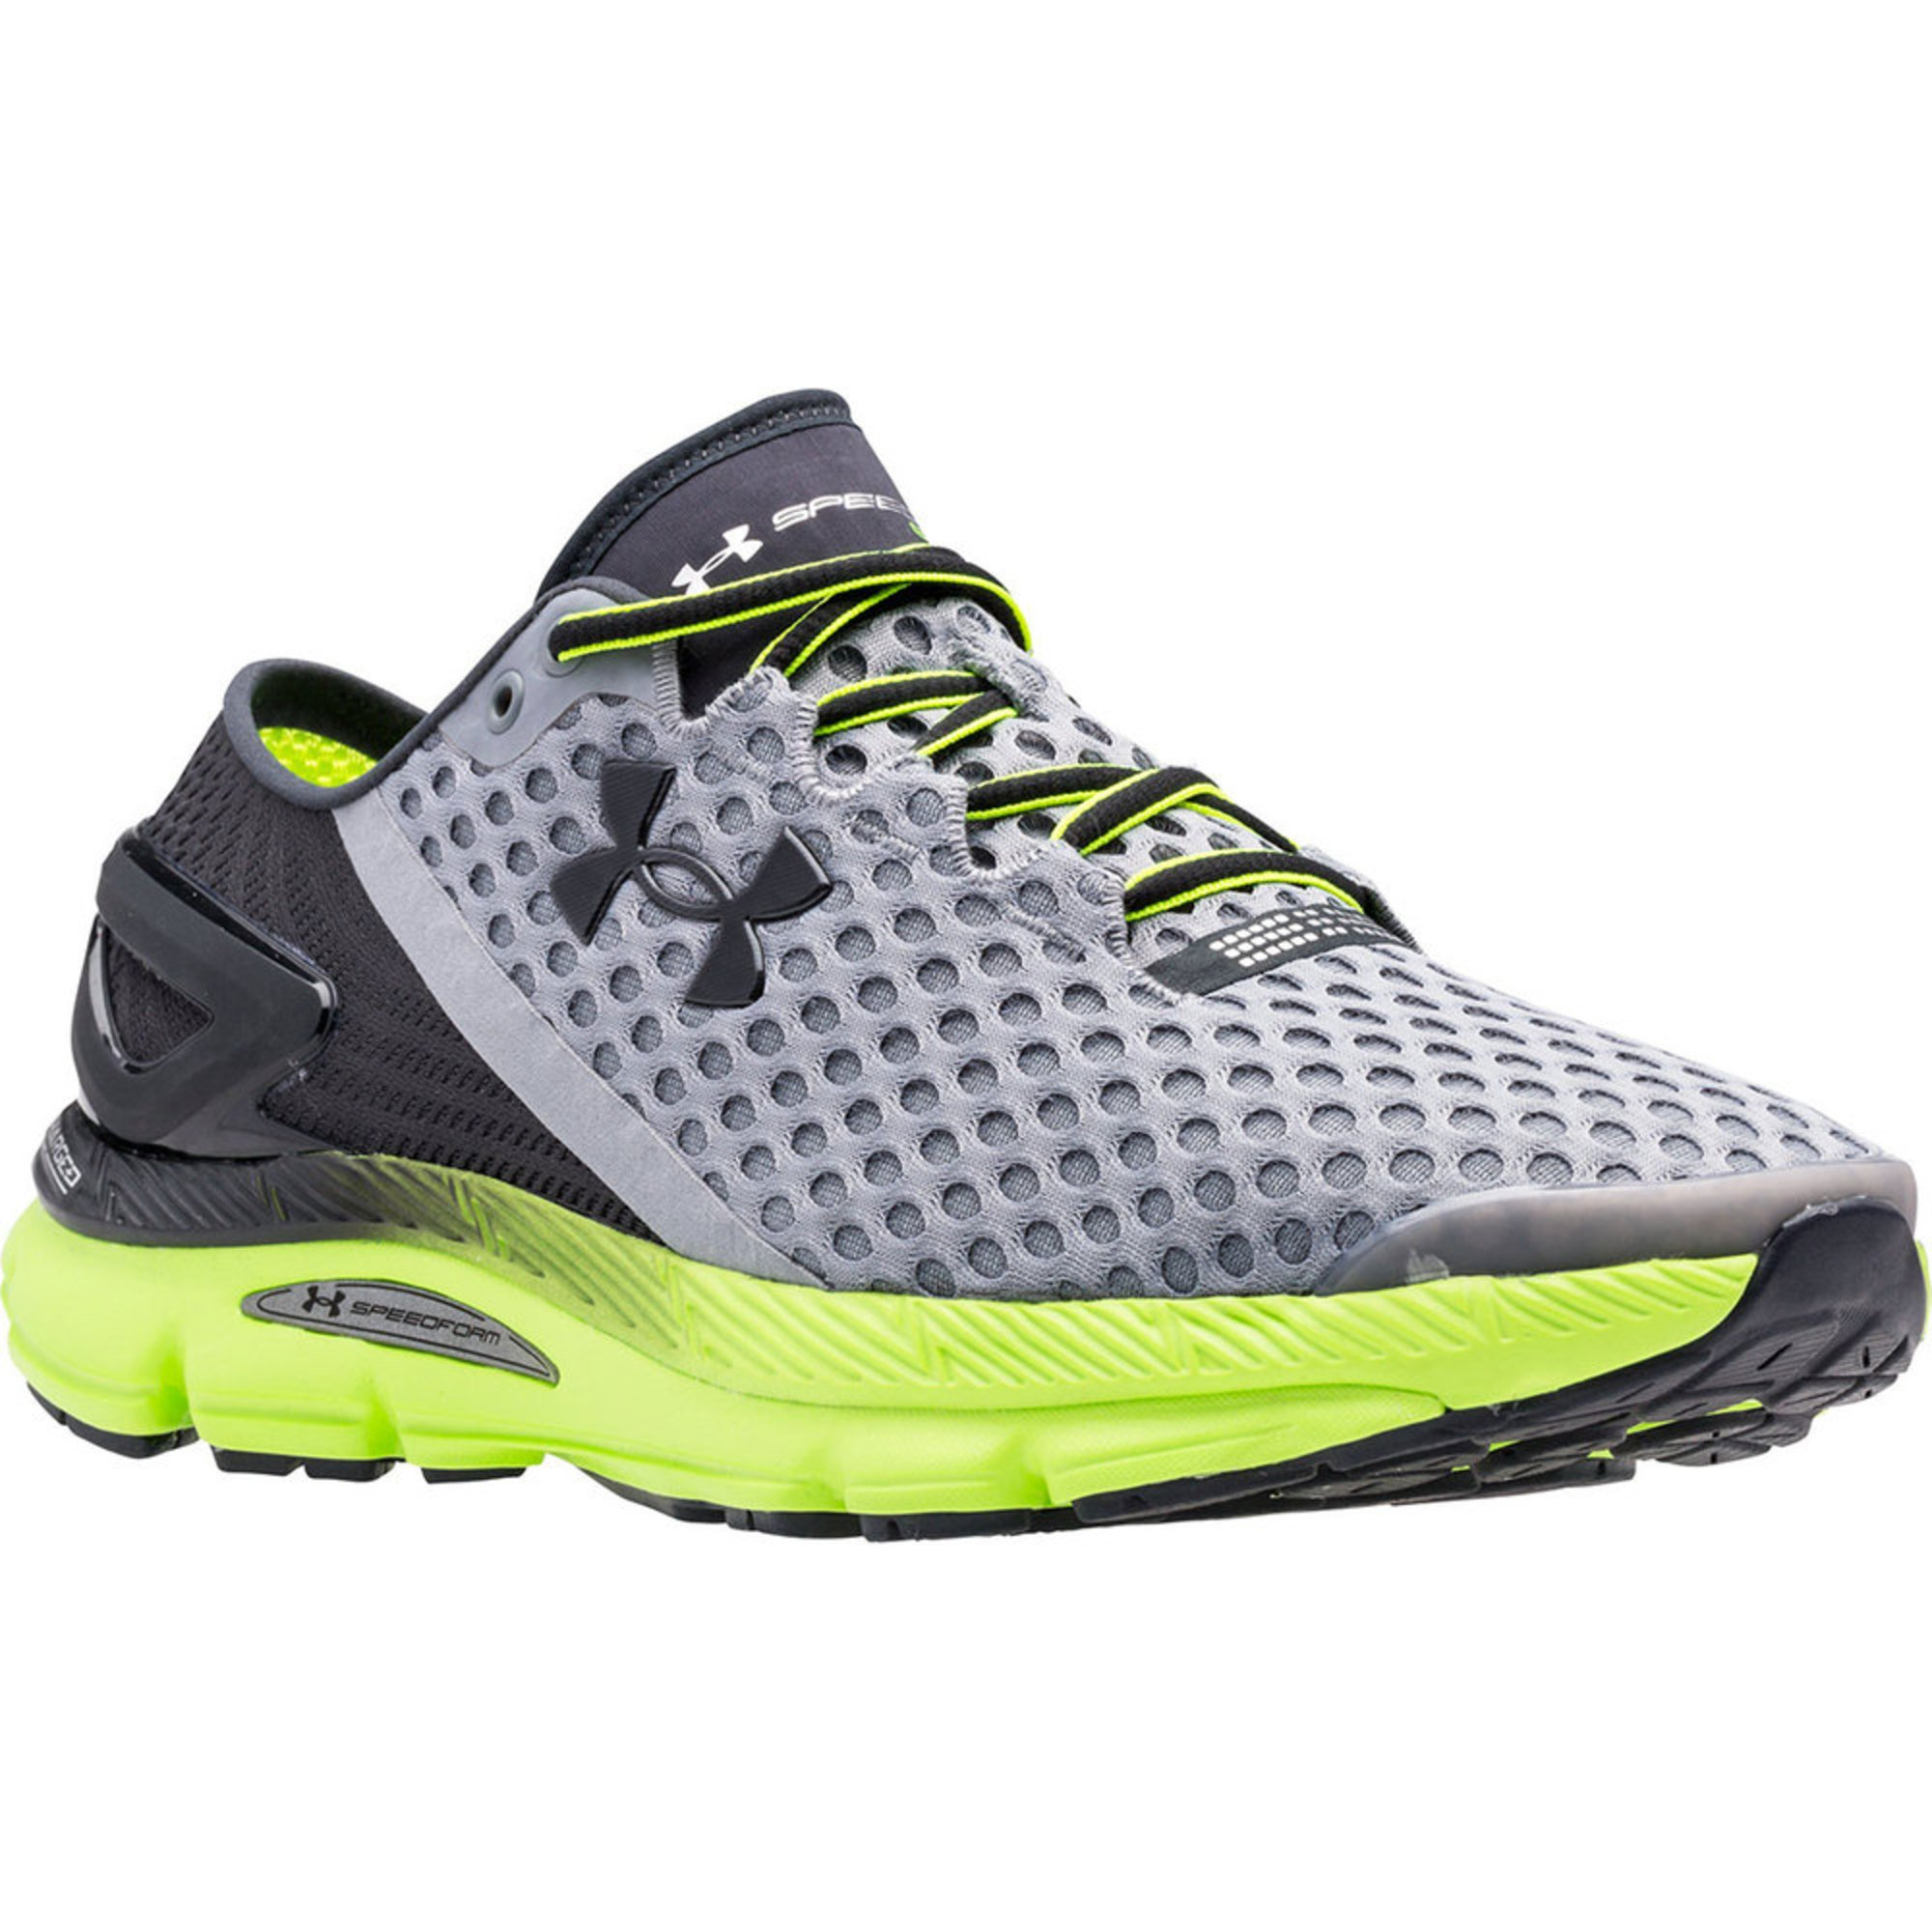 Under Armour Charged Bandit  Mens Running Shoes Sale Cheap